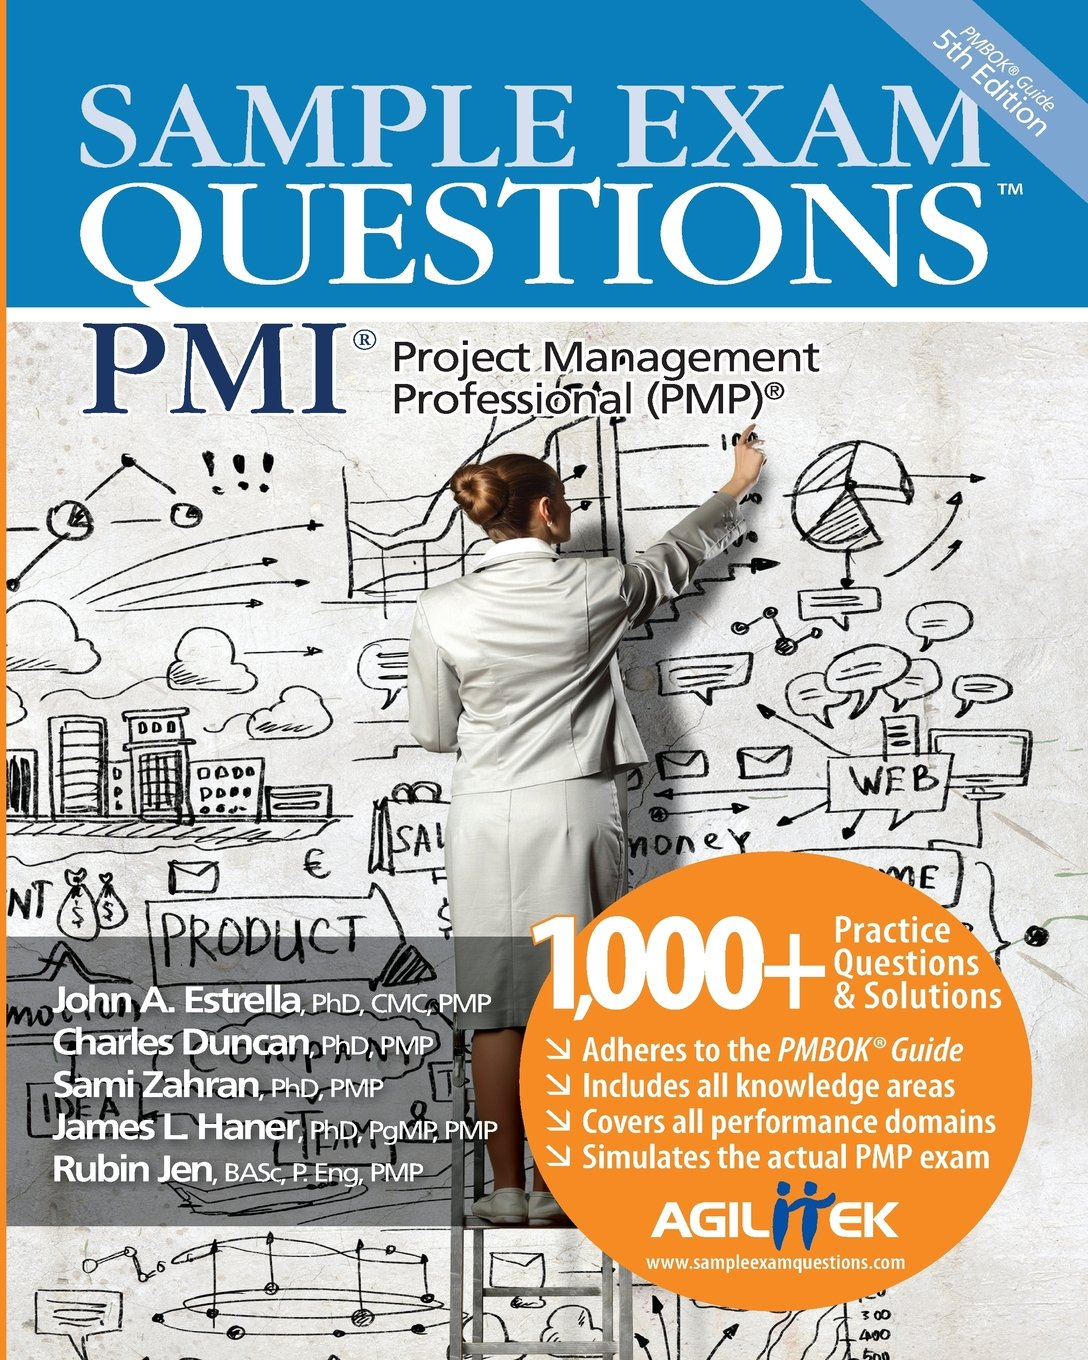 Sample Exam Questions Pmi Project Management Professional Pmp